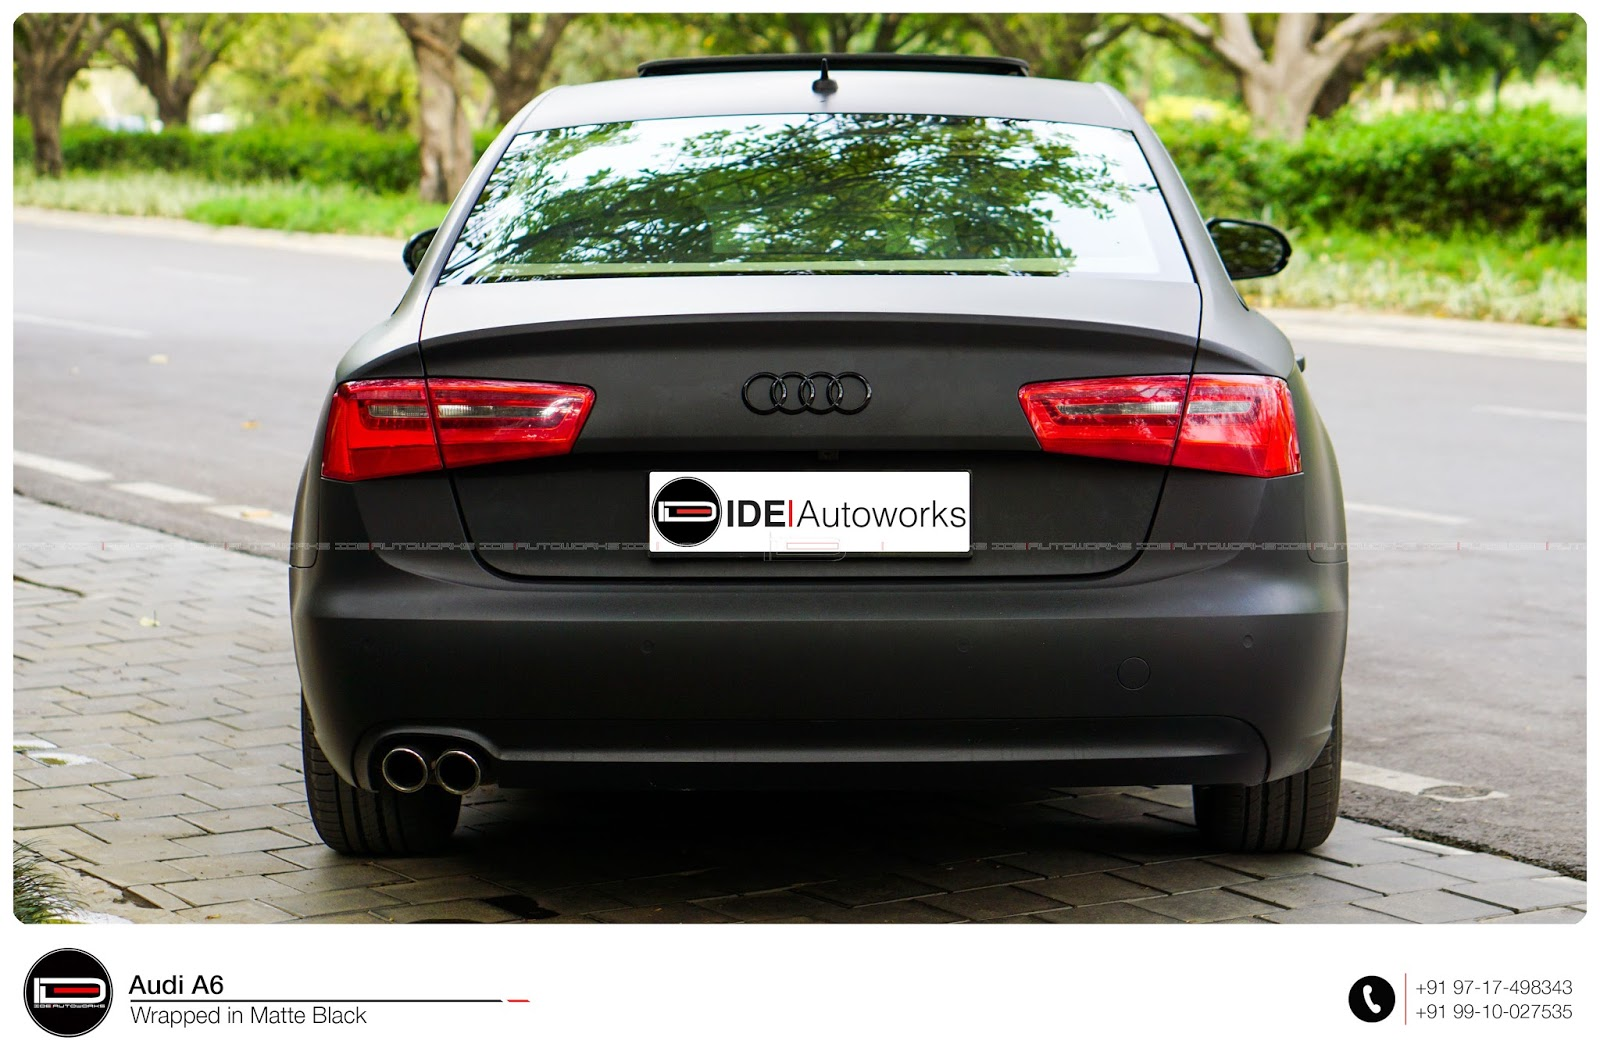 Audi A6: Matte Black Wrap | IDE Autoworks Audi A Black Satin on audi a4, audi black edition, audi tt black, mazda mazda3 black, mercedes-benz cl550 black, audi b7 black, audi q5, audi s8 black, mercedes-benz e350 black, audi s6 black, audi s5 black, honda accord sedan black, volkswagen passat tdi black, audi a7 black, audi s7 black, range rover black, audi a8, audi a3, 2016 audi rs black, audi a5,